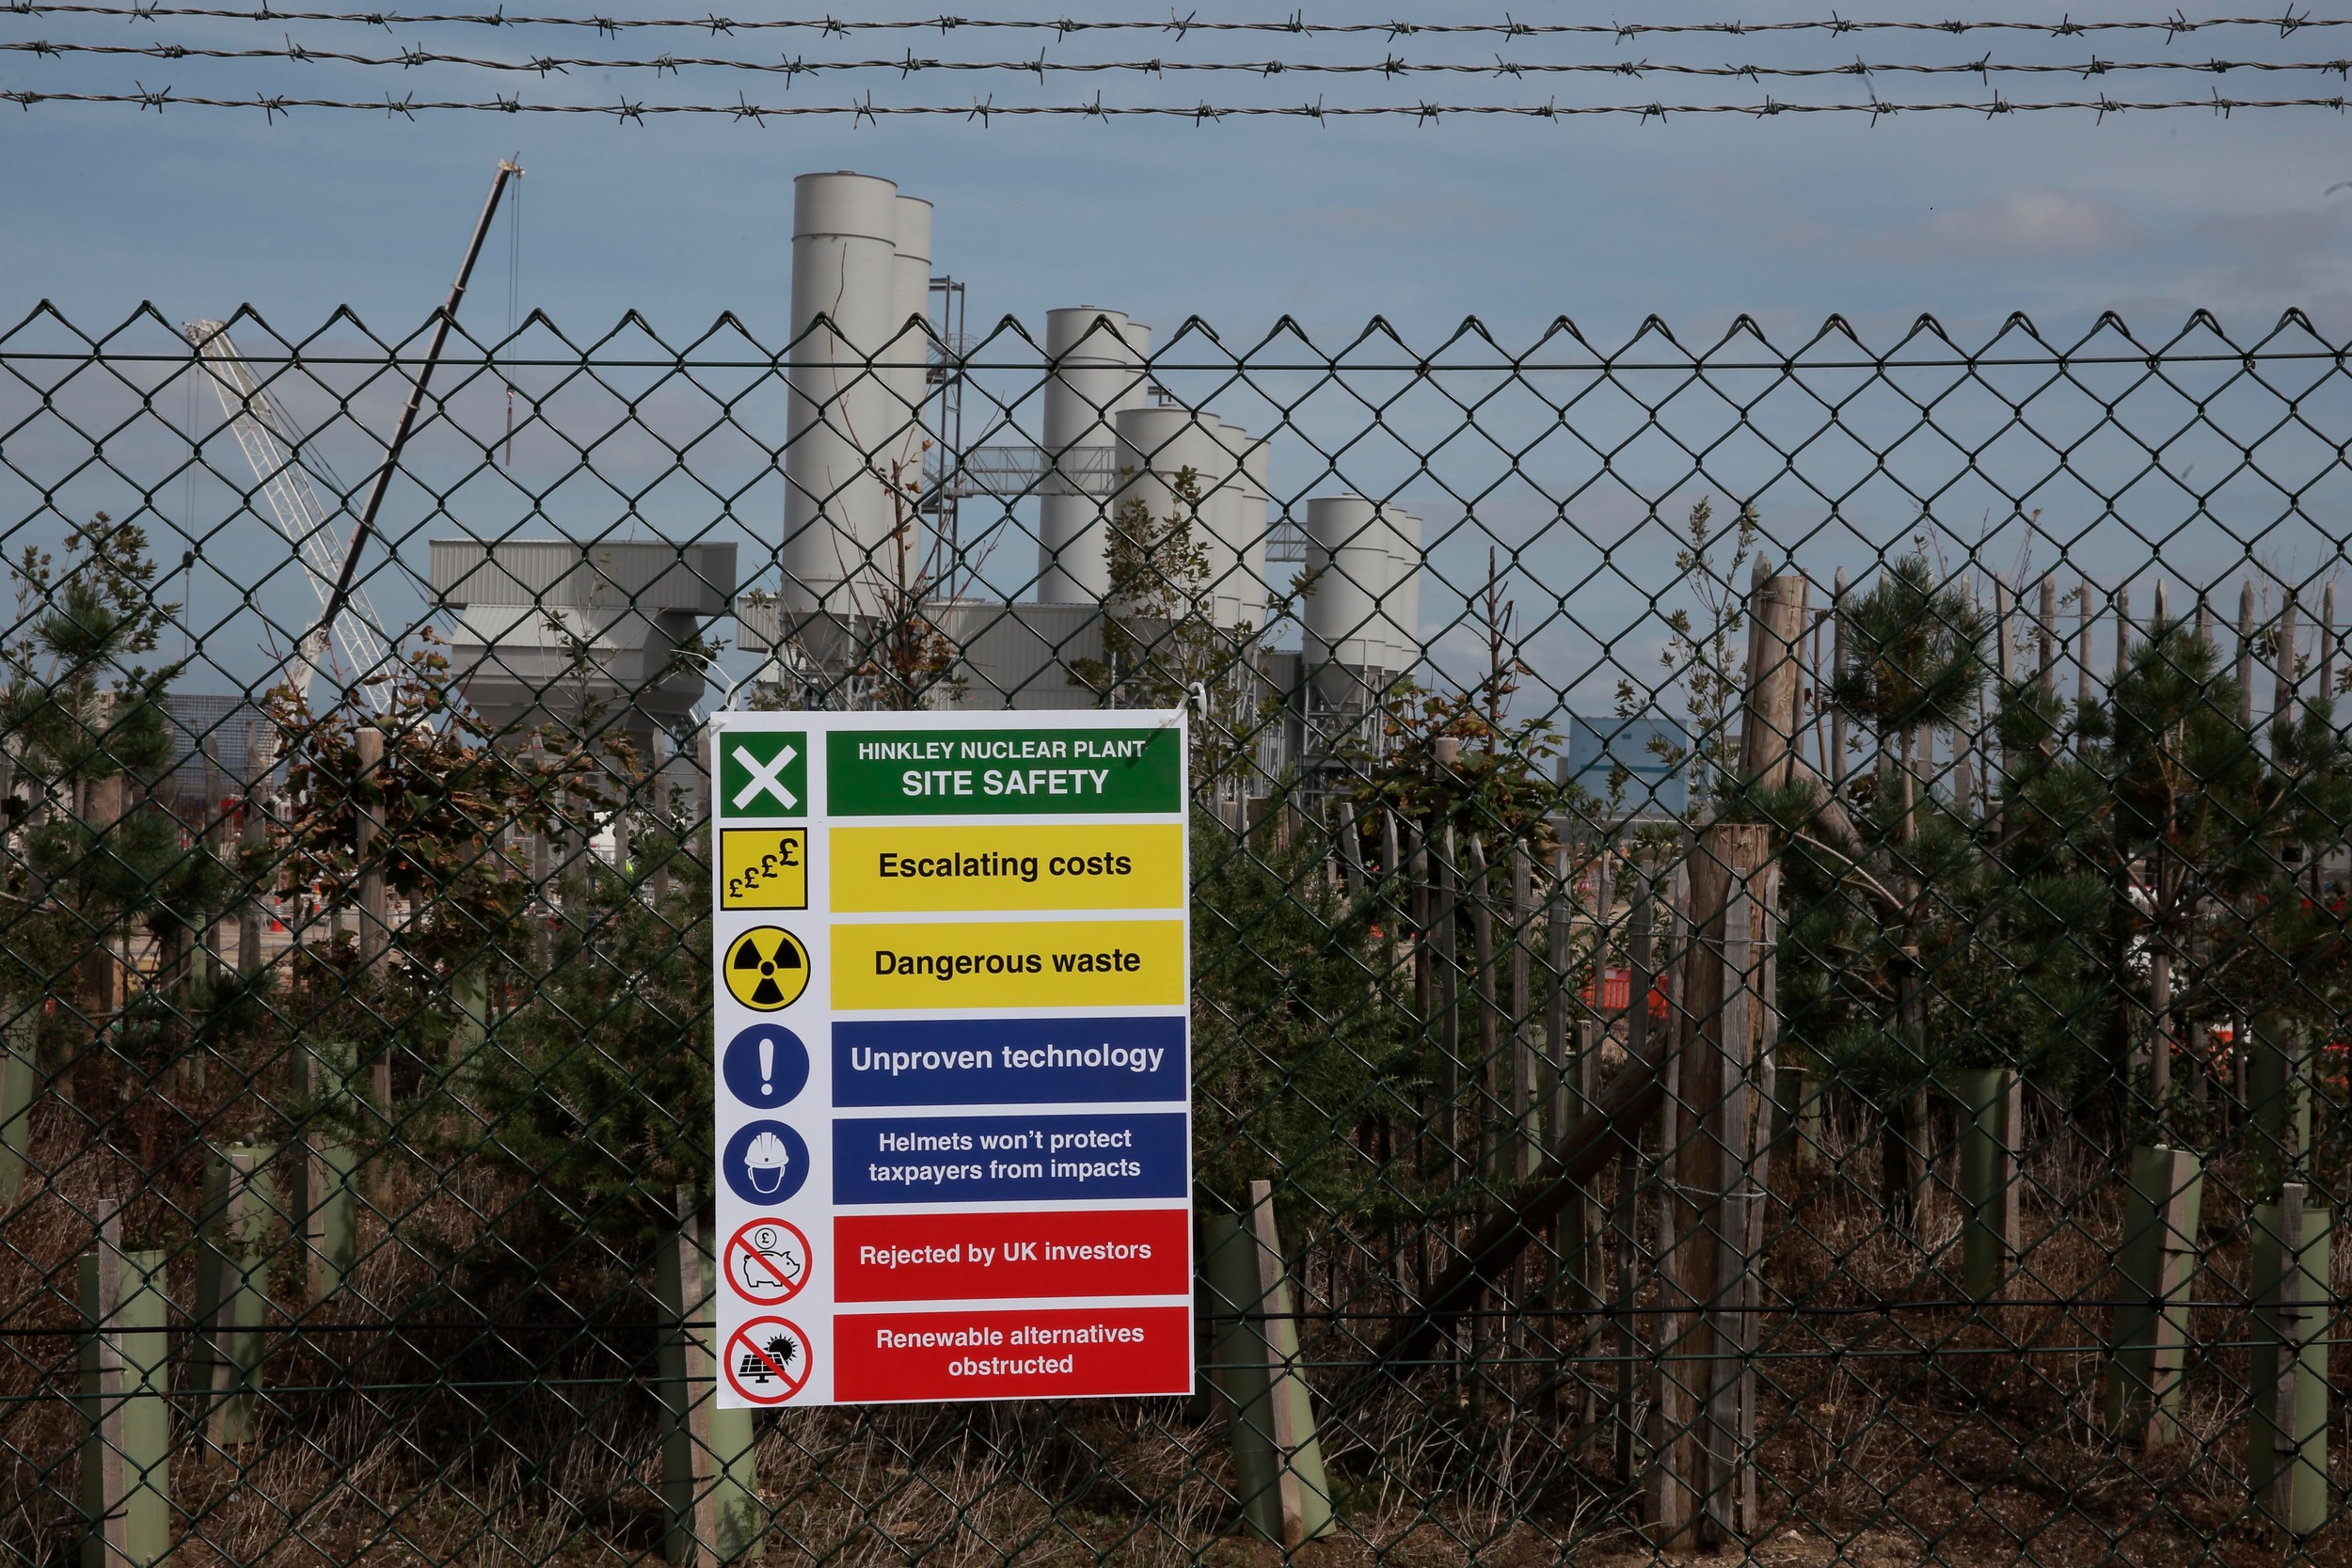 fence with Hinkley Point power station in the background